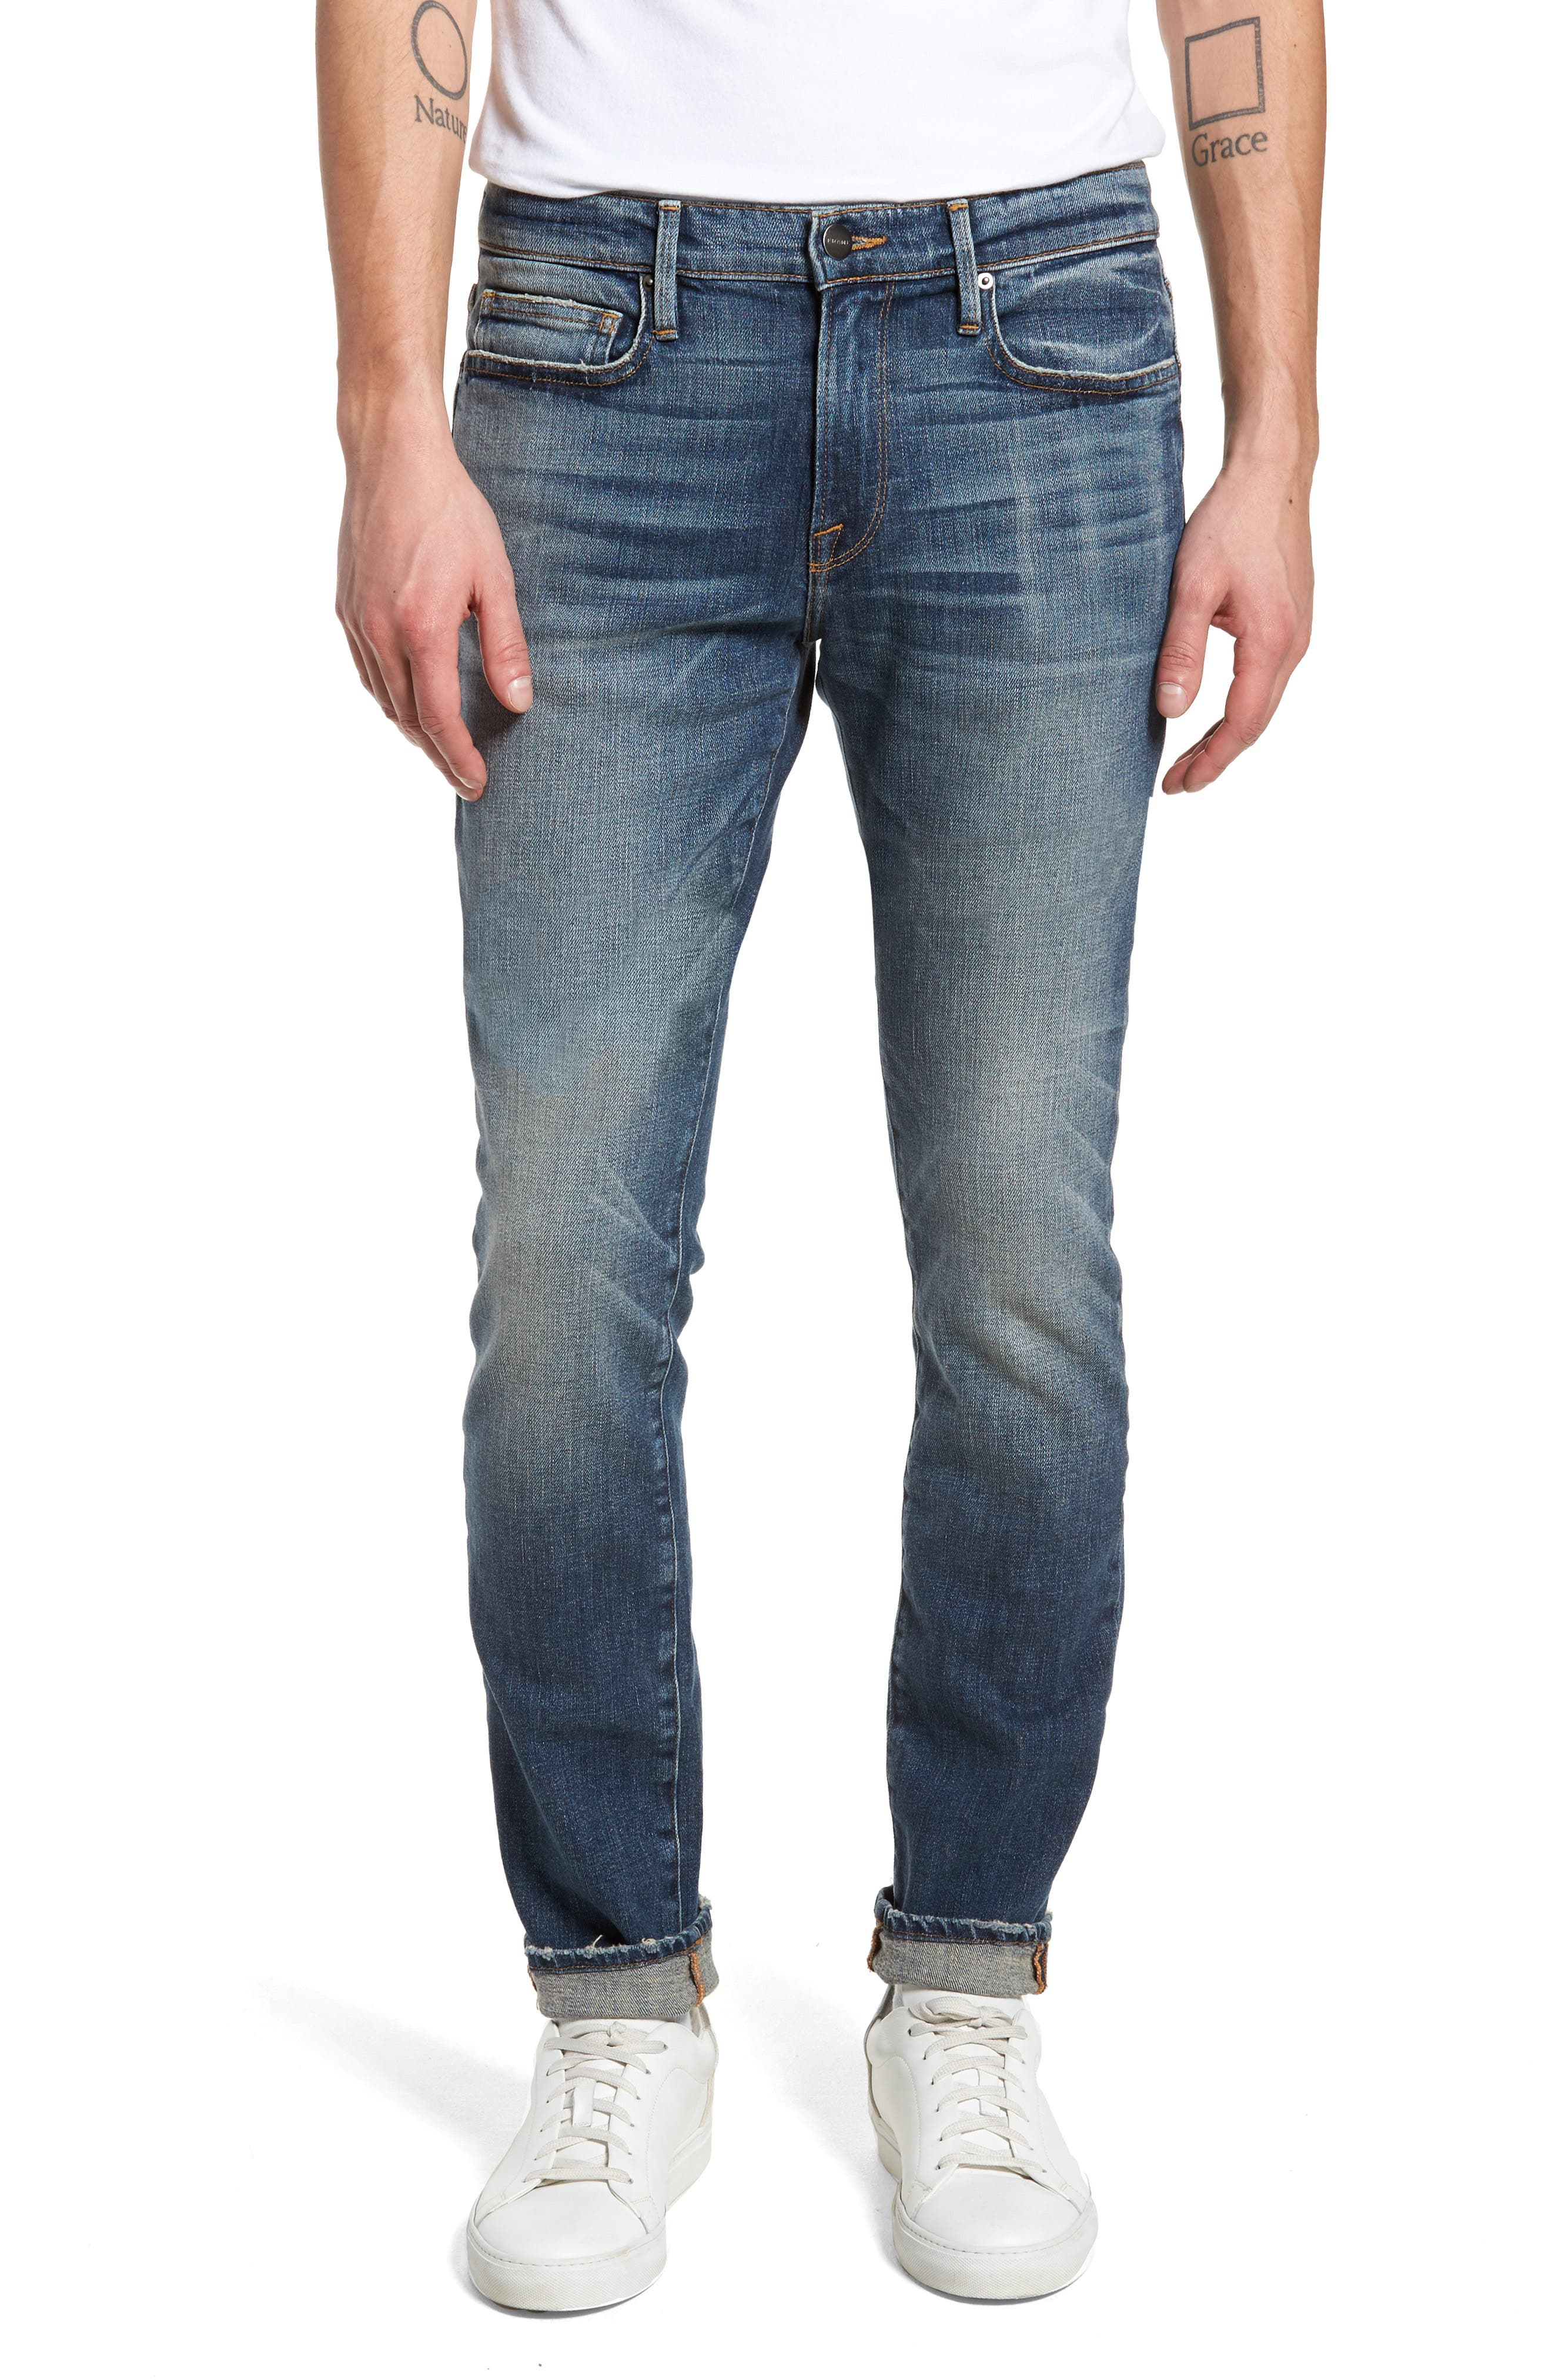 L'Homme Skinny Fit Jeans,                         Main,                         color, Calloway